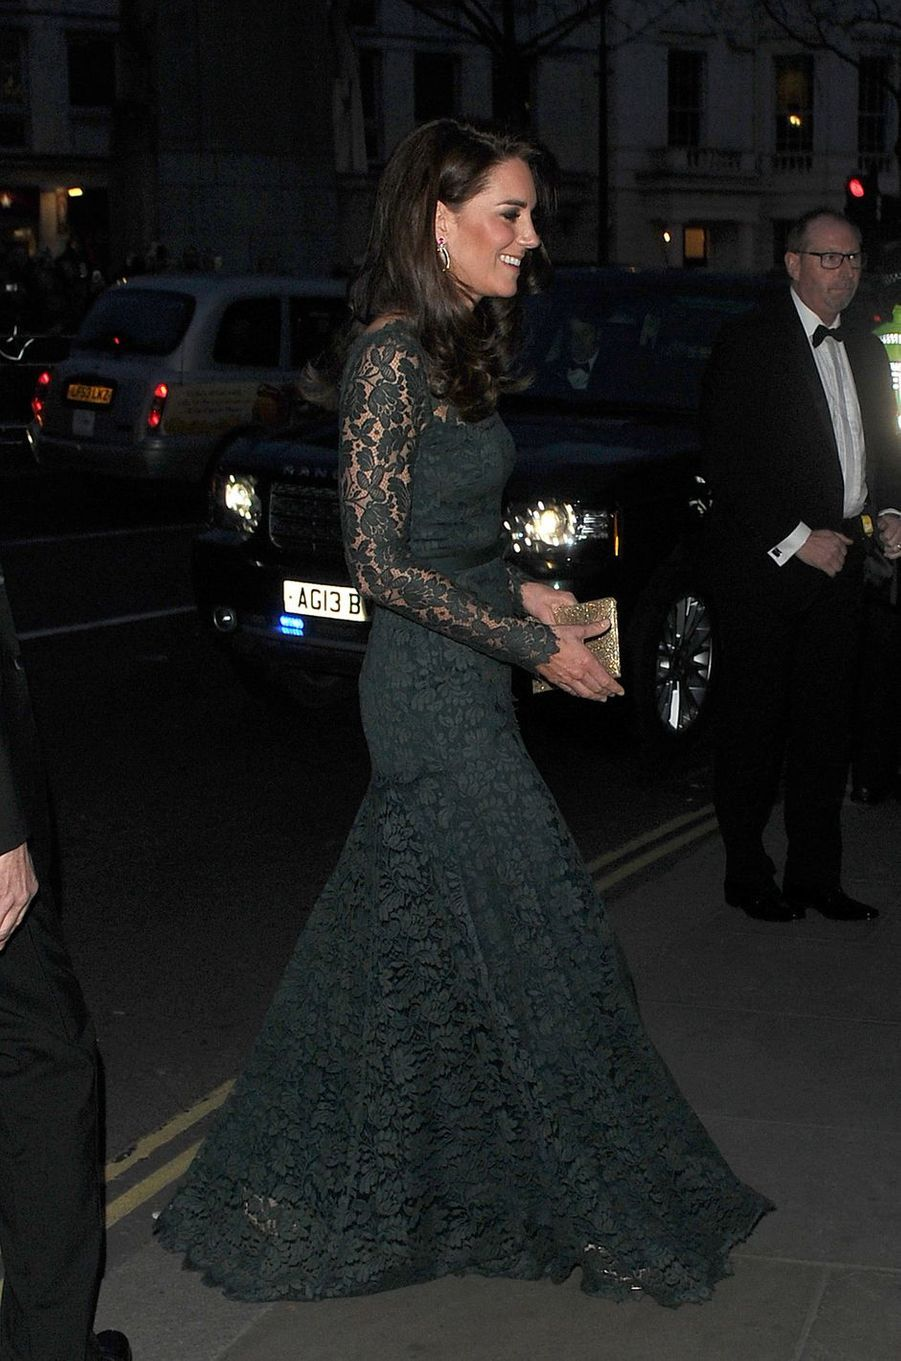 La duchesse de Cambridge, née Kate Middleton, dans une nouvelle robe Temperley London à Londres le 28 mars 2017